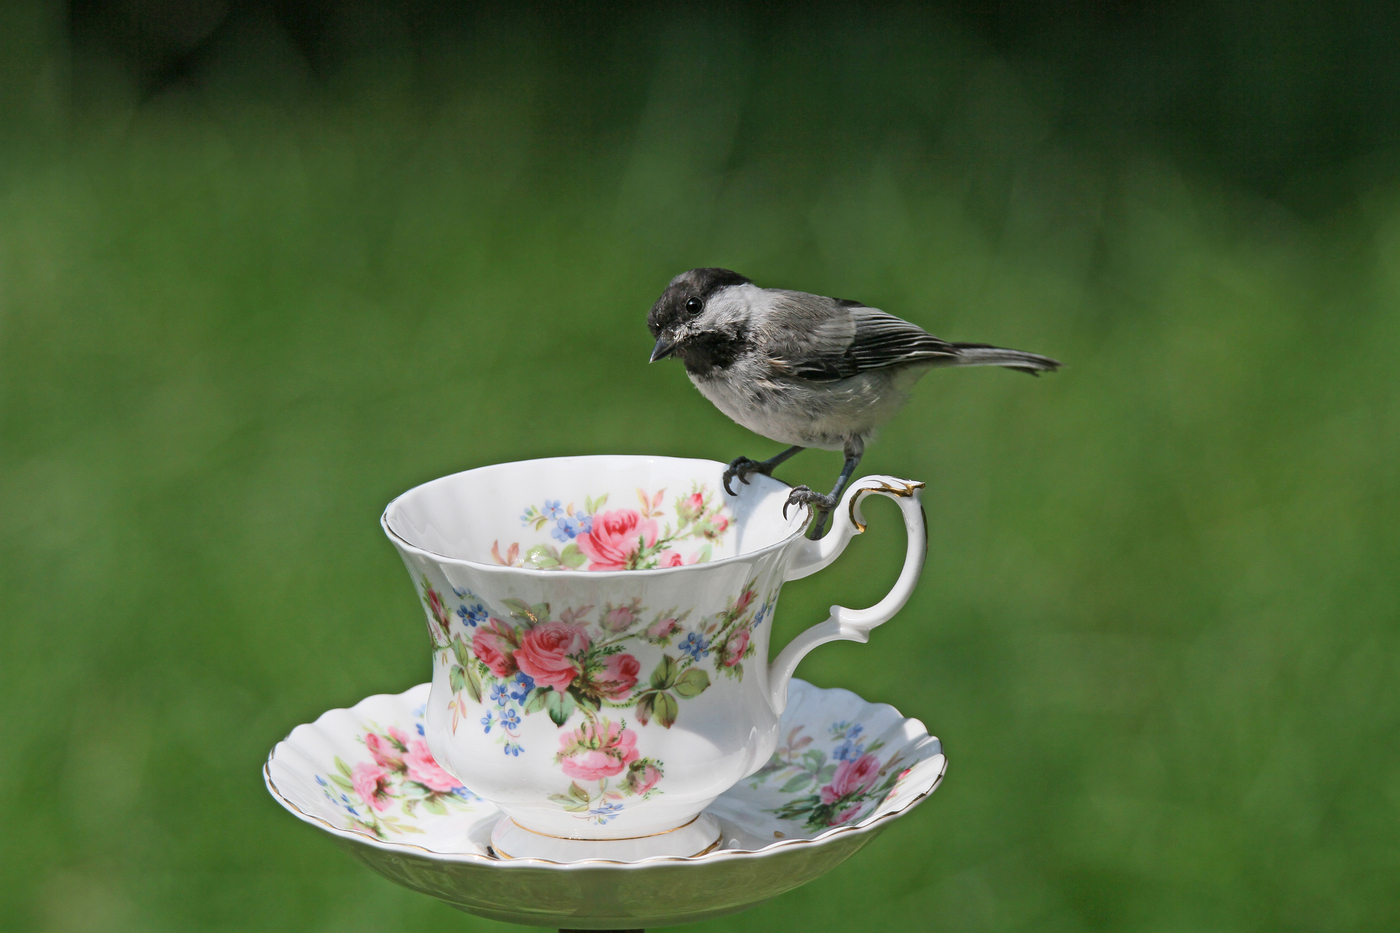 Chickadee at Teacup #28